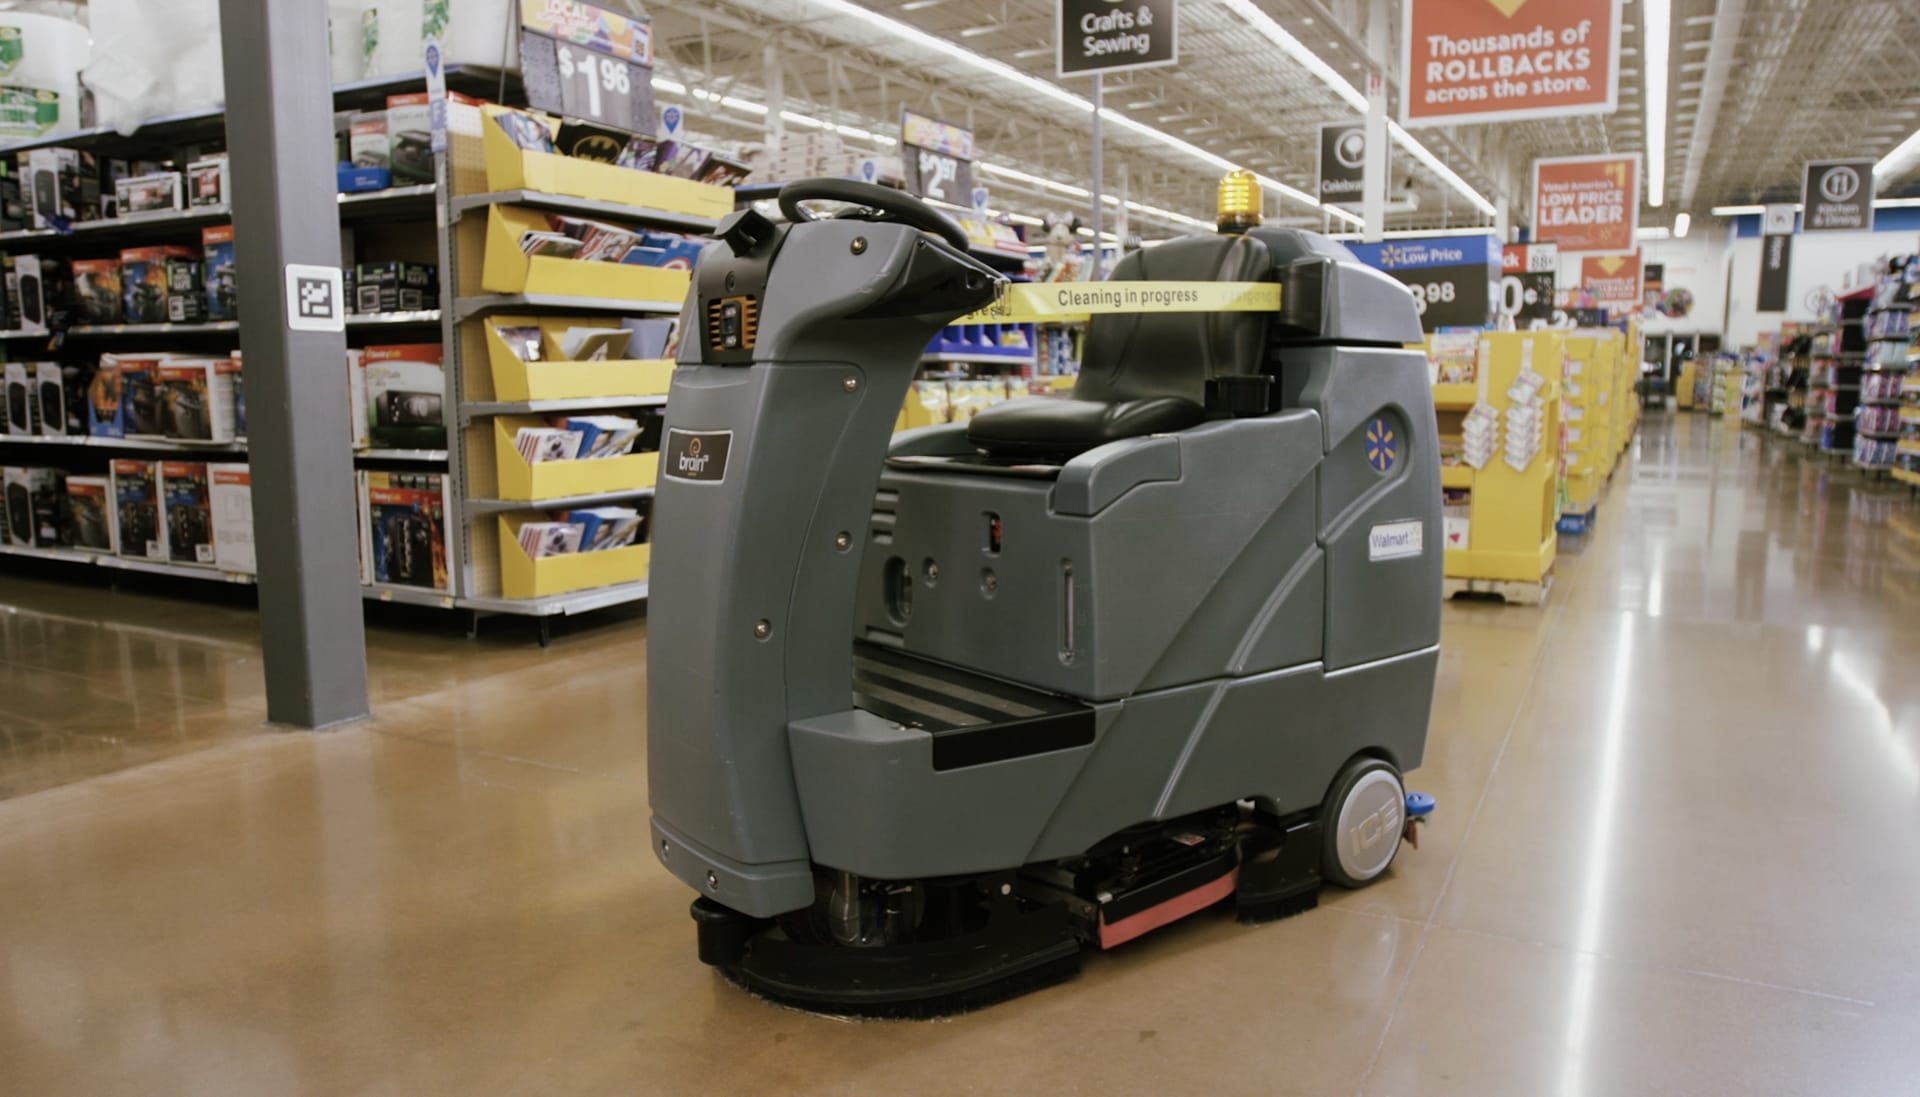 Walmart battles online retail by adding more robots to its stores